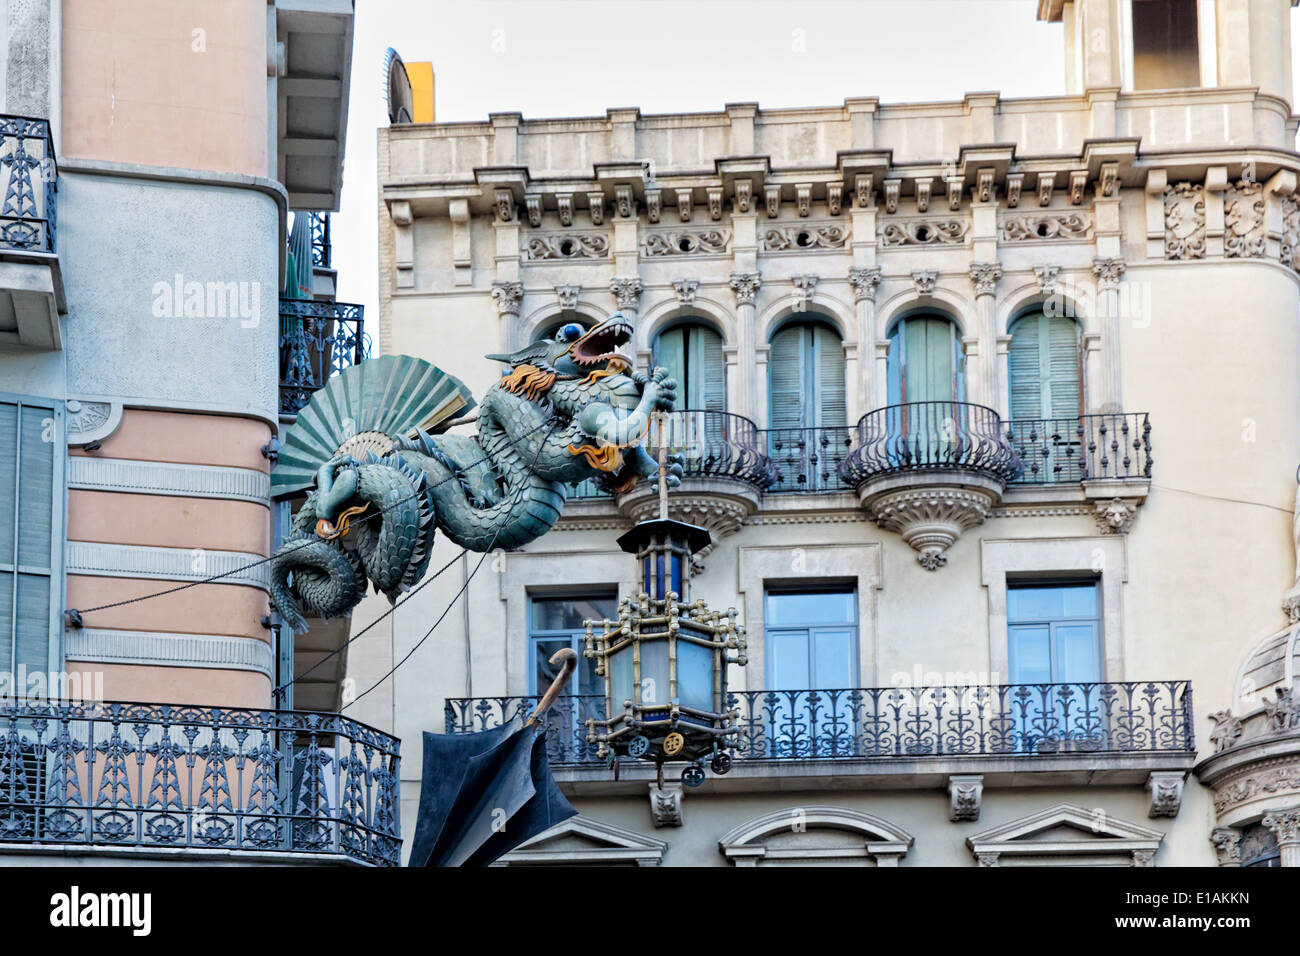 Chinese Dragon Sculpture on the Walls of a House Decorated with Umbrellas,  Bruno Quadras Building, Las Ramblas, Barcelona - Stock Image